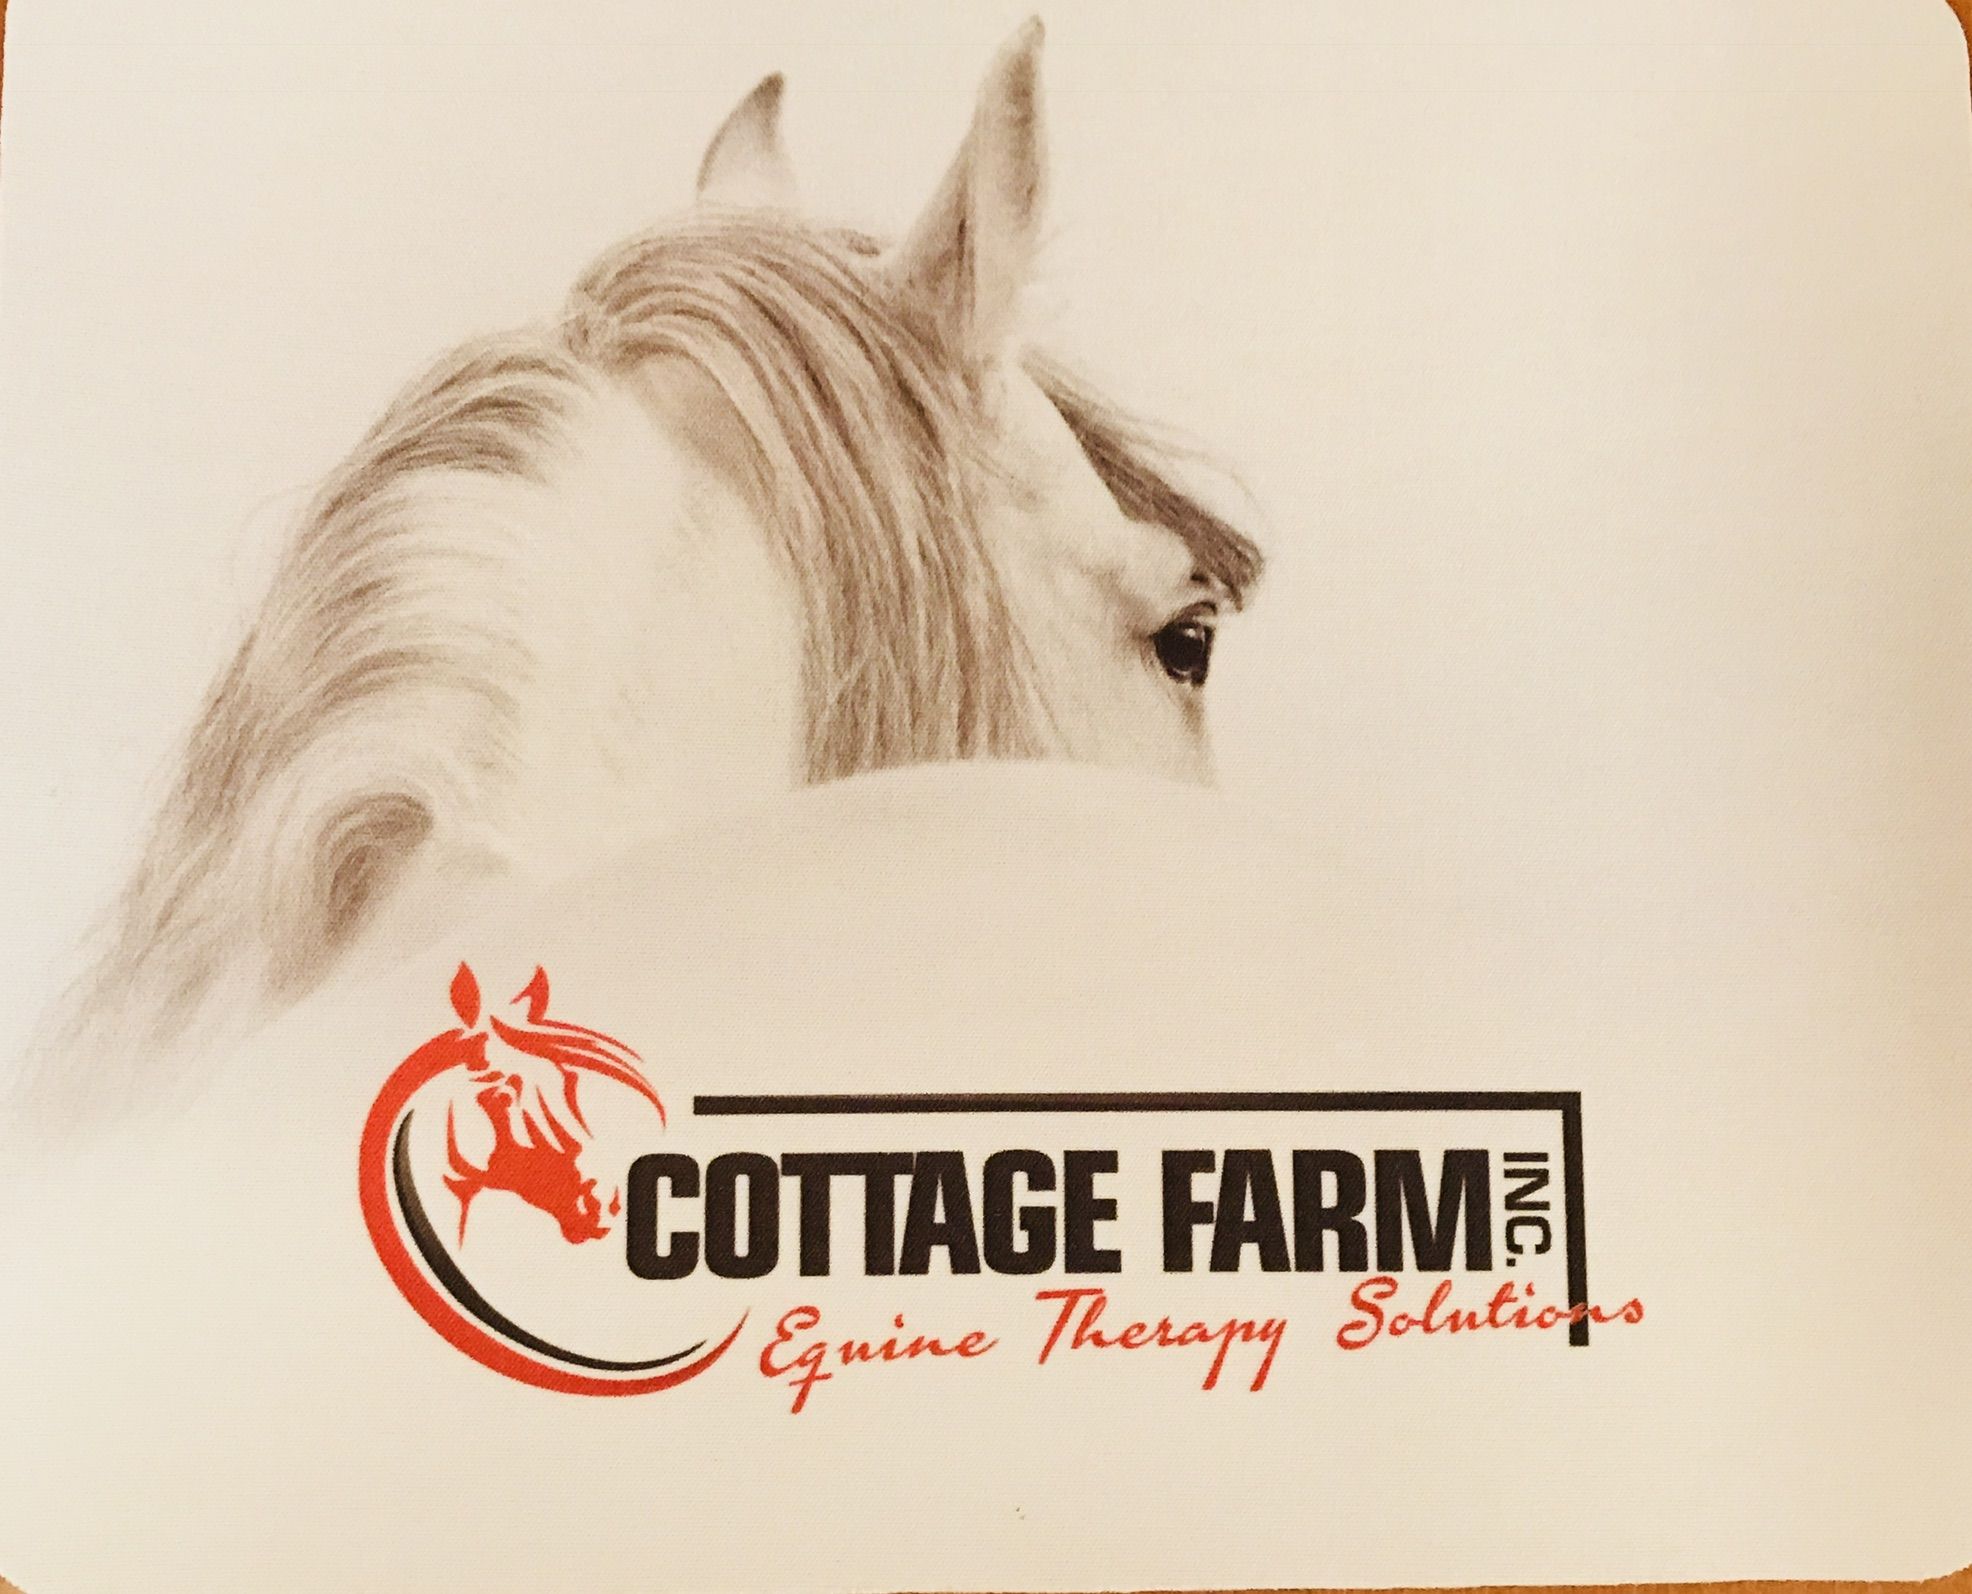 Cottage Farm Inc- Equine Therapy Solutions